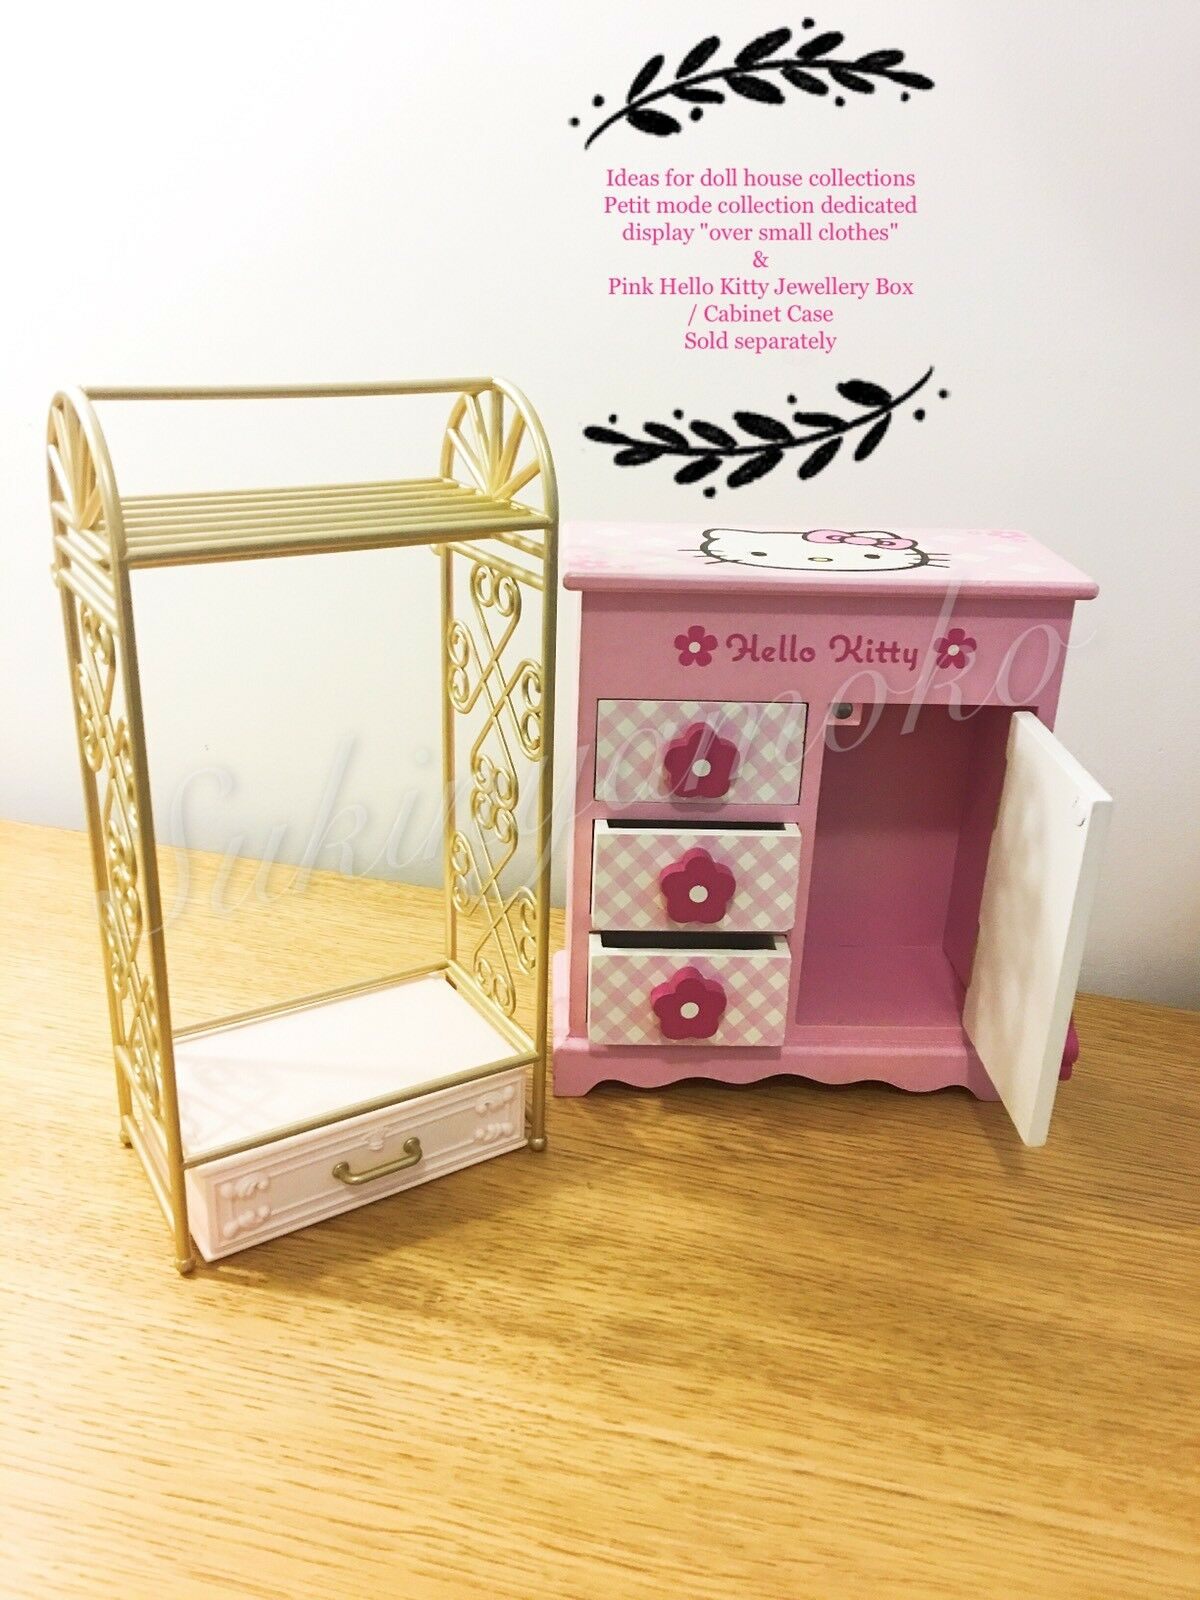 Doll House collections  - Hello Kitty Jewellery Box / Cabinet Case - Hand made